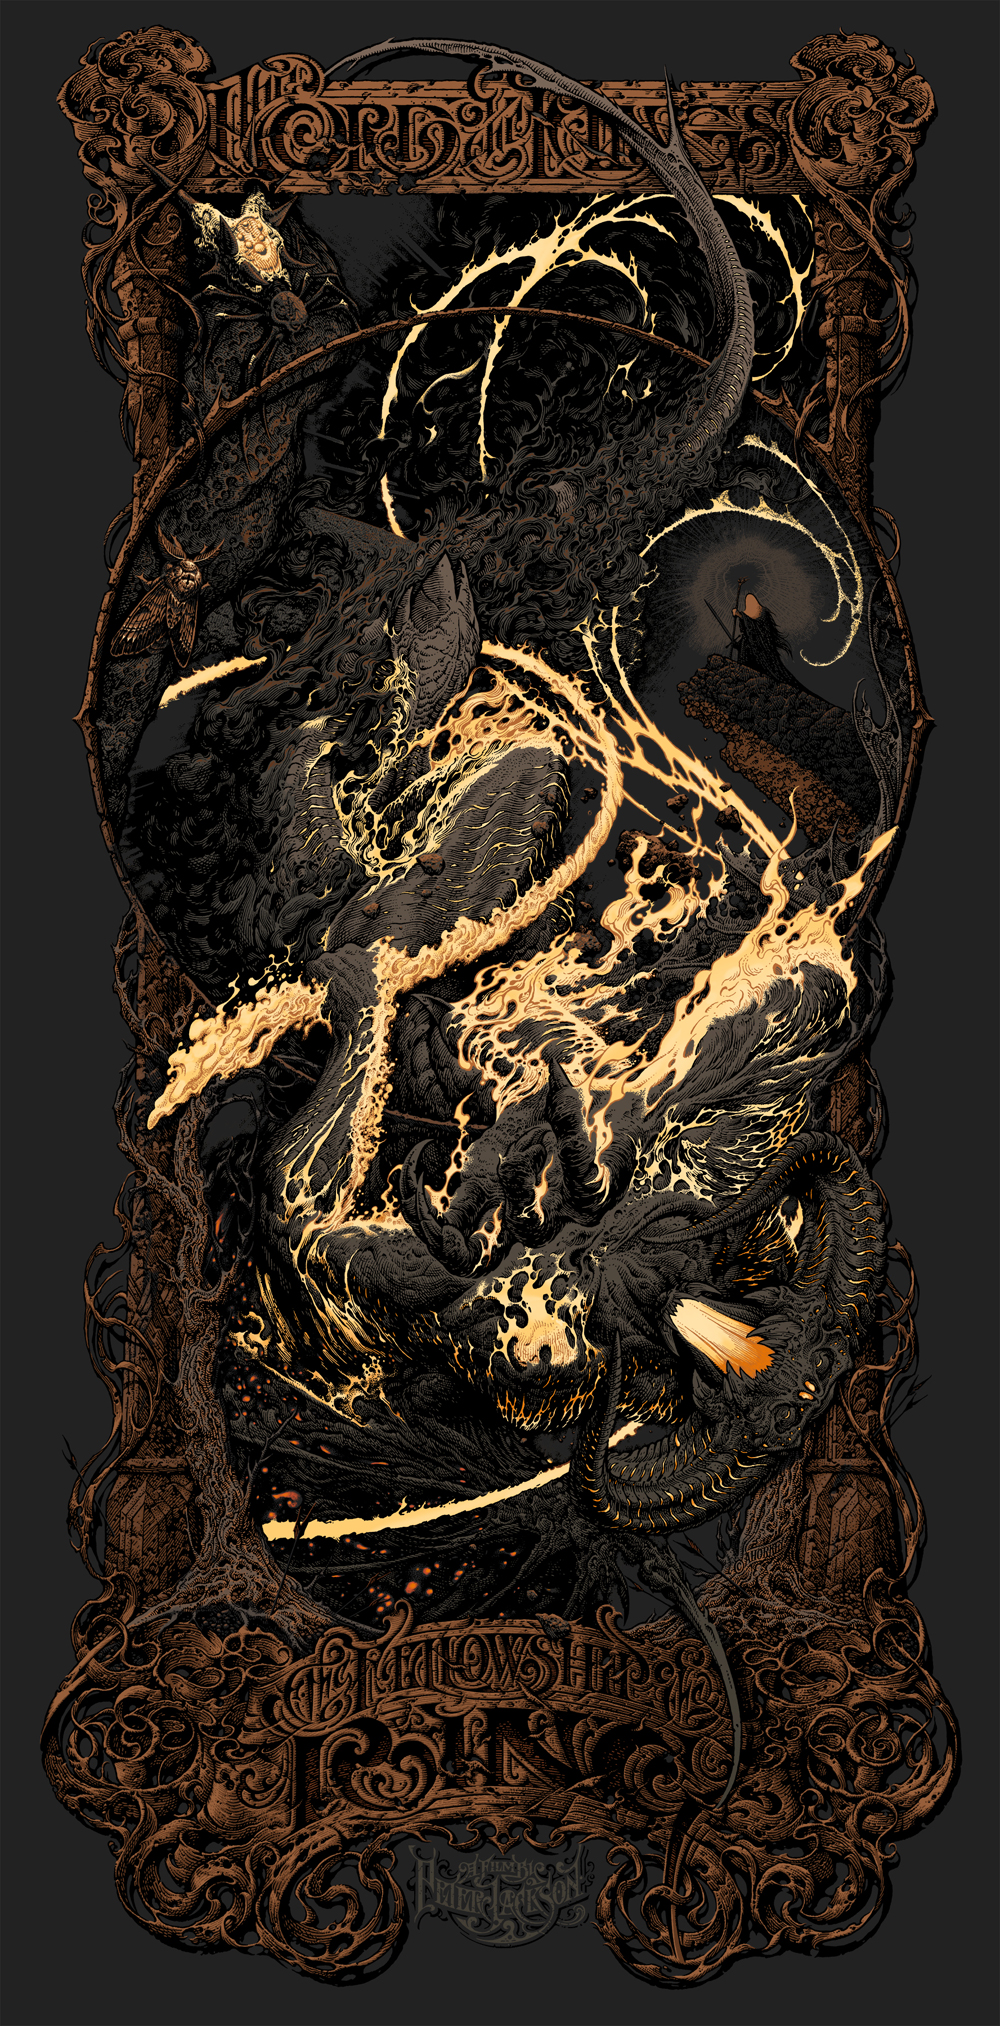 horkey The Lord of the Rings The Fellowship of the Ring variant